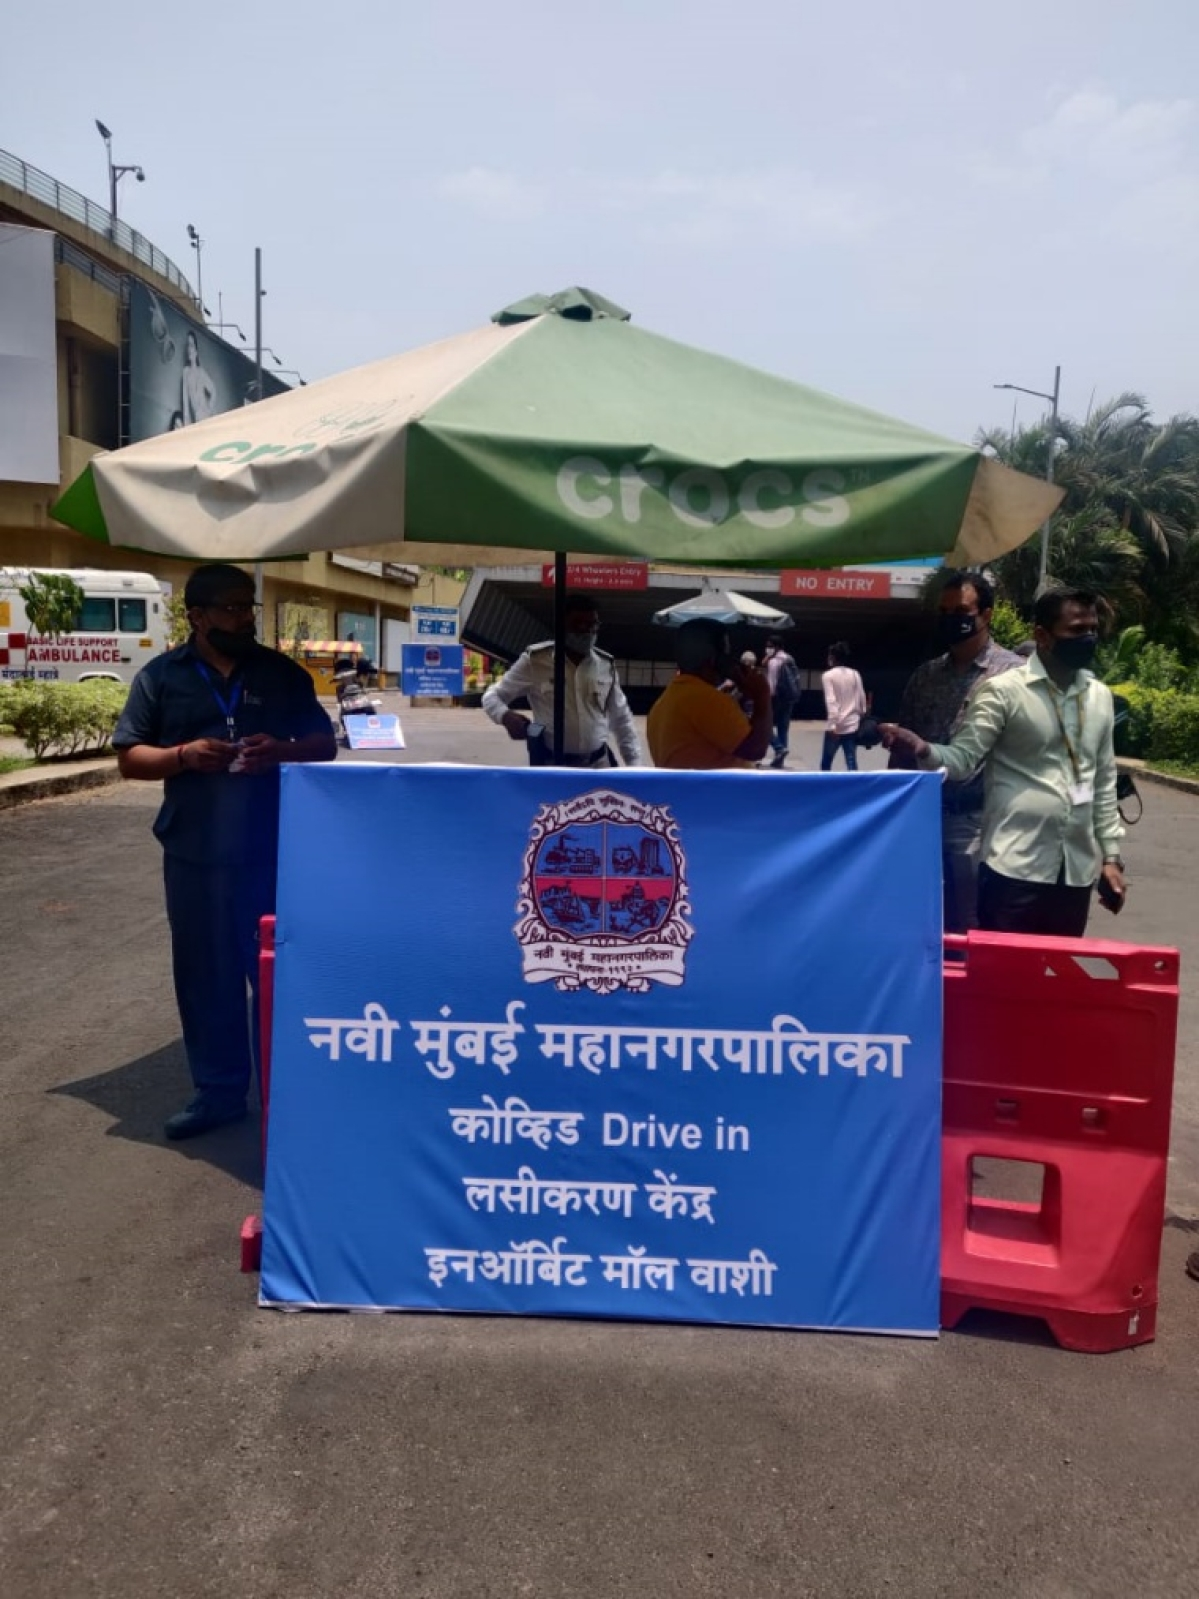 COVID-19 in Navi Mumbai: 'Drive-in vaccination' for above 45 years of age group begins at mall in Vashi